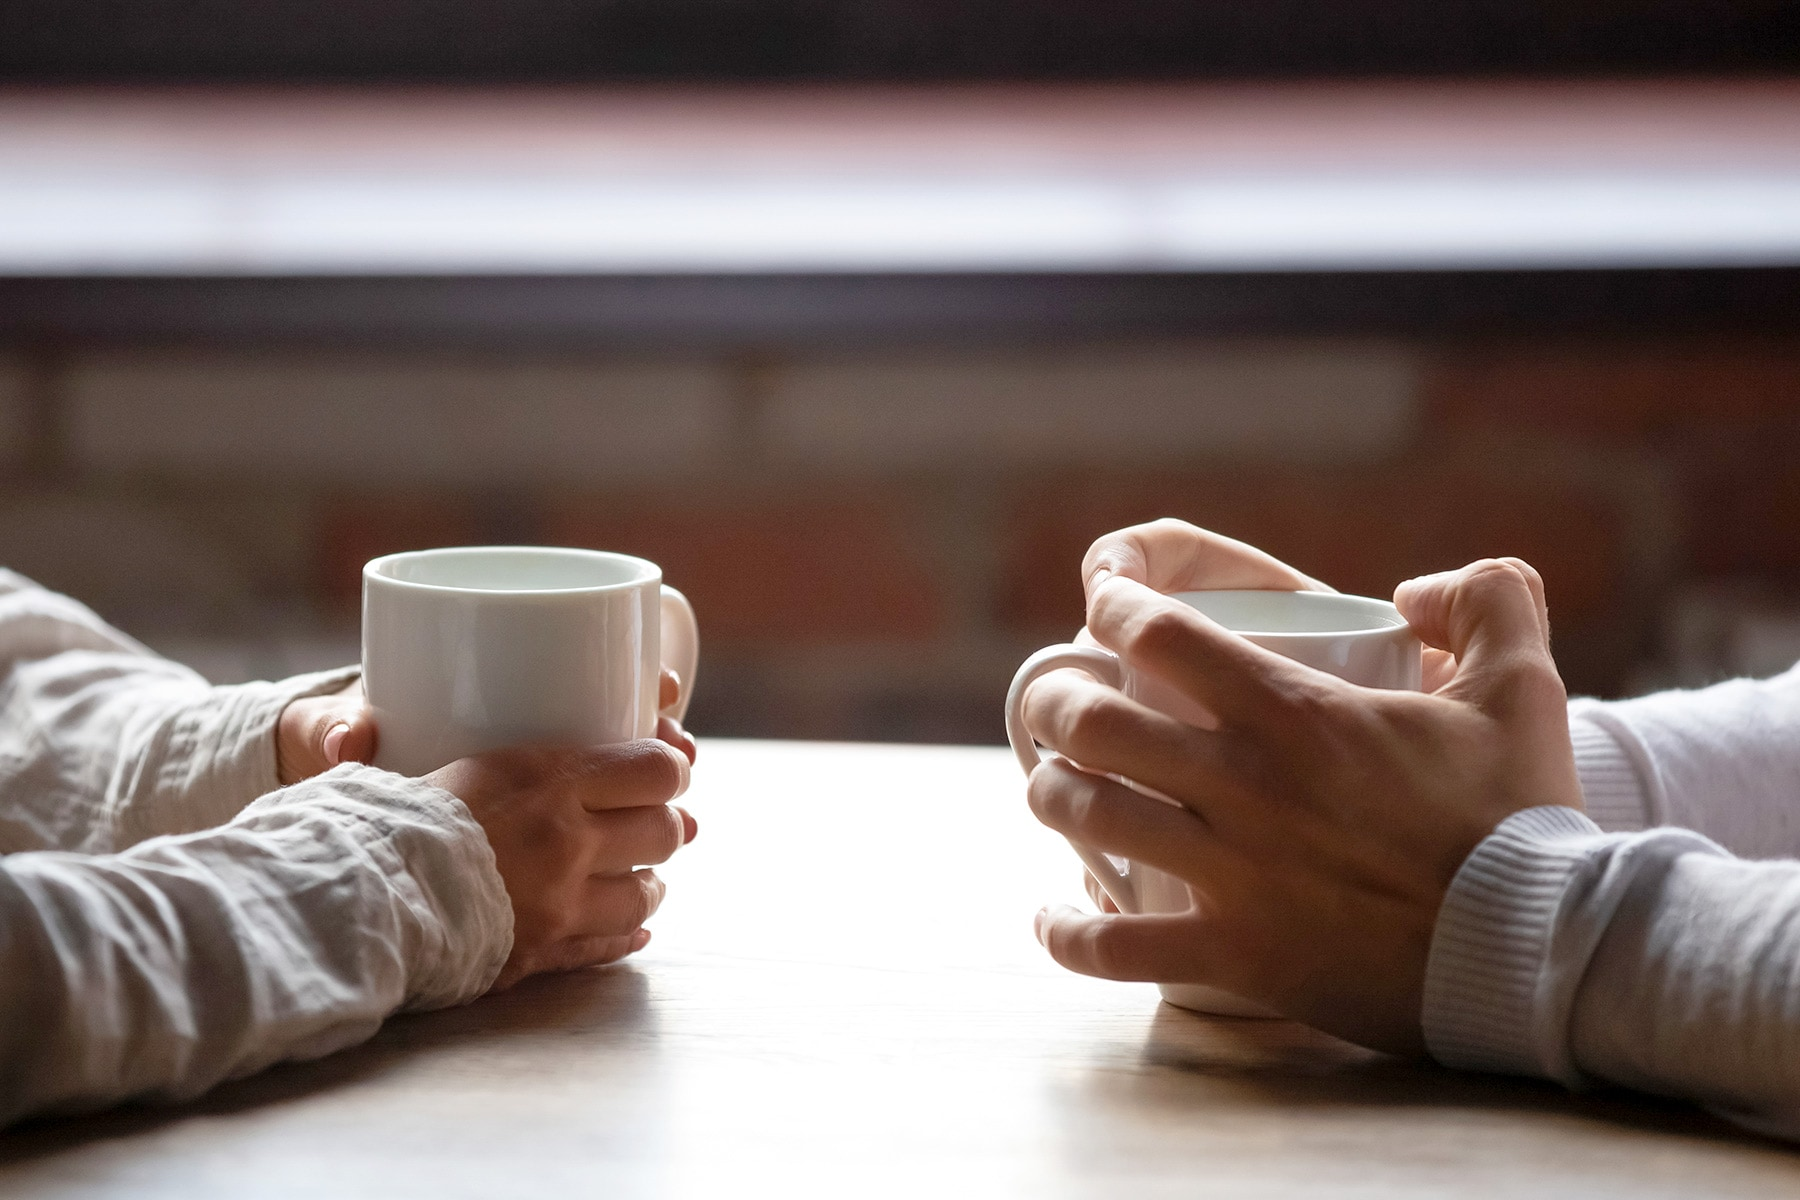 photo of hands holding cups of coffee